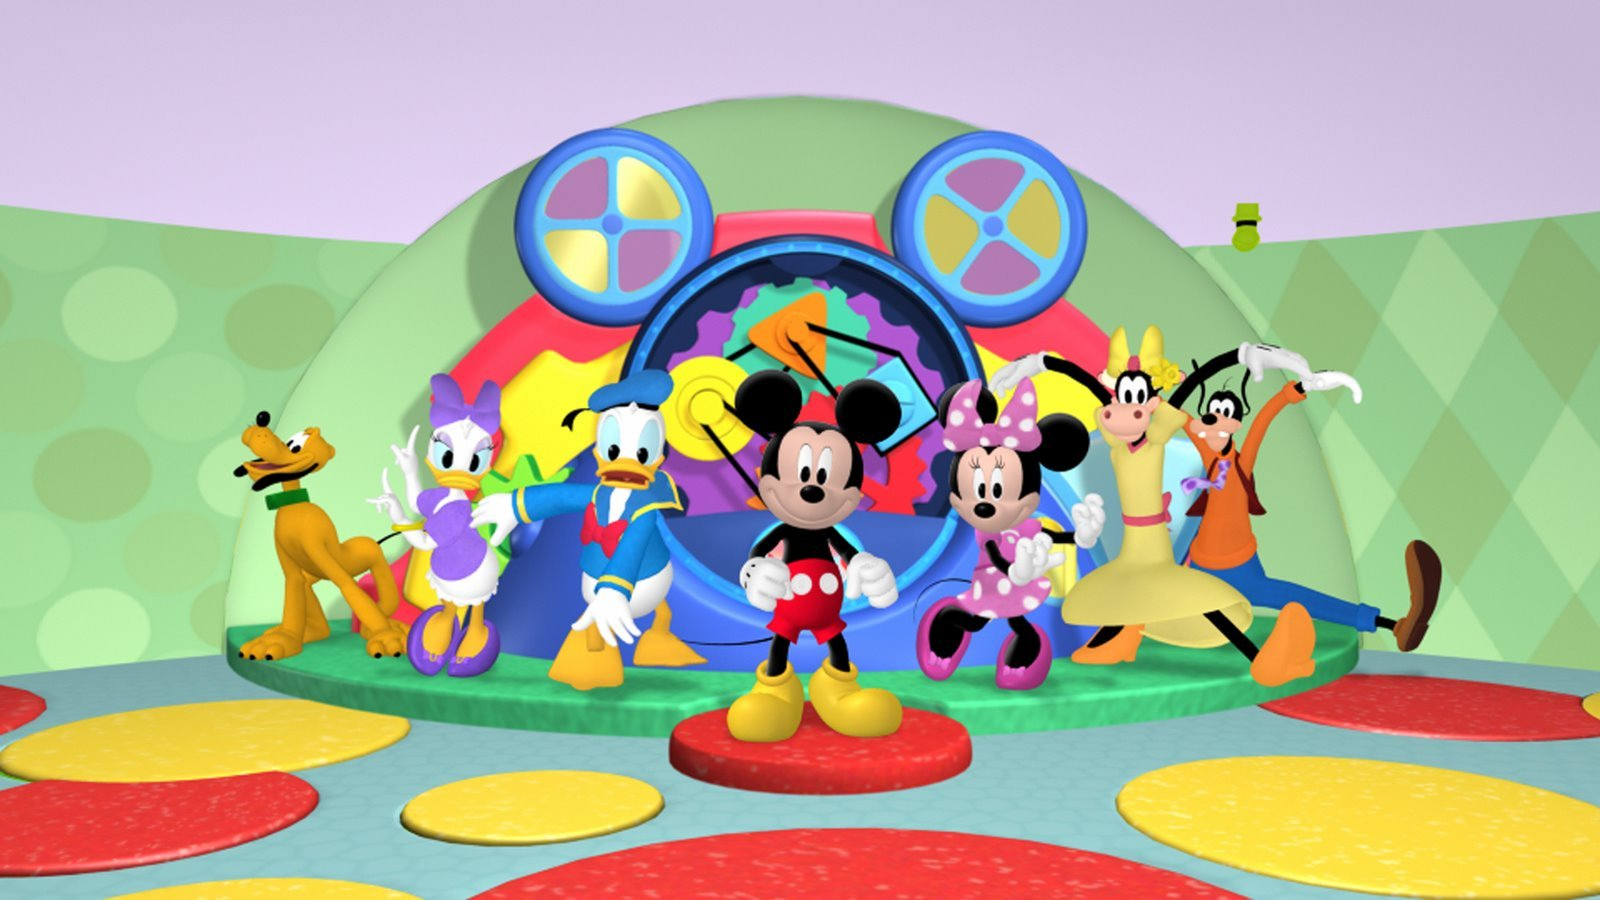 [49+] Mickey Mouse Clubhouse Wallpaper on WallpaperSafari